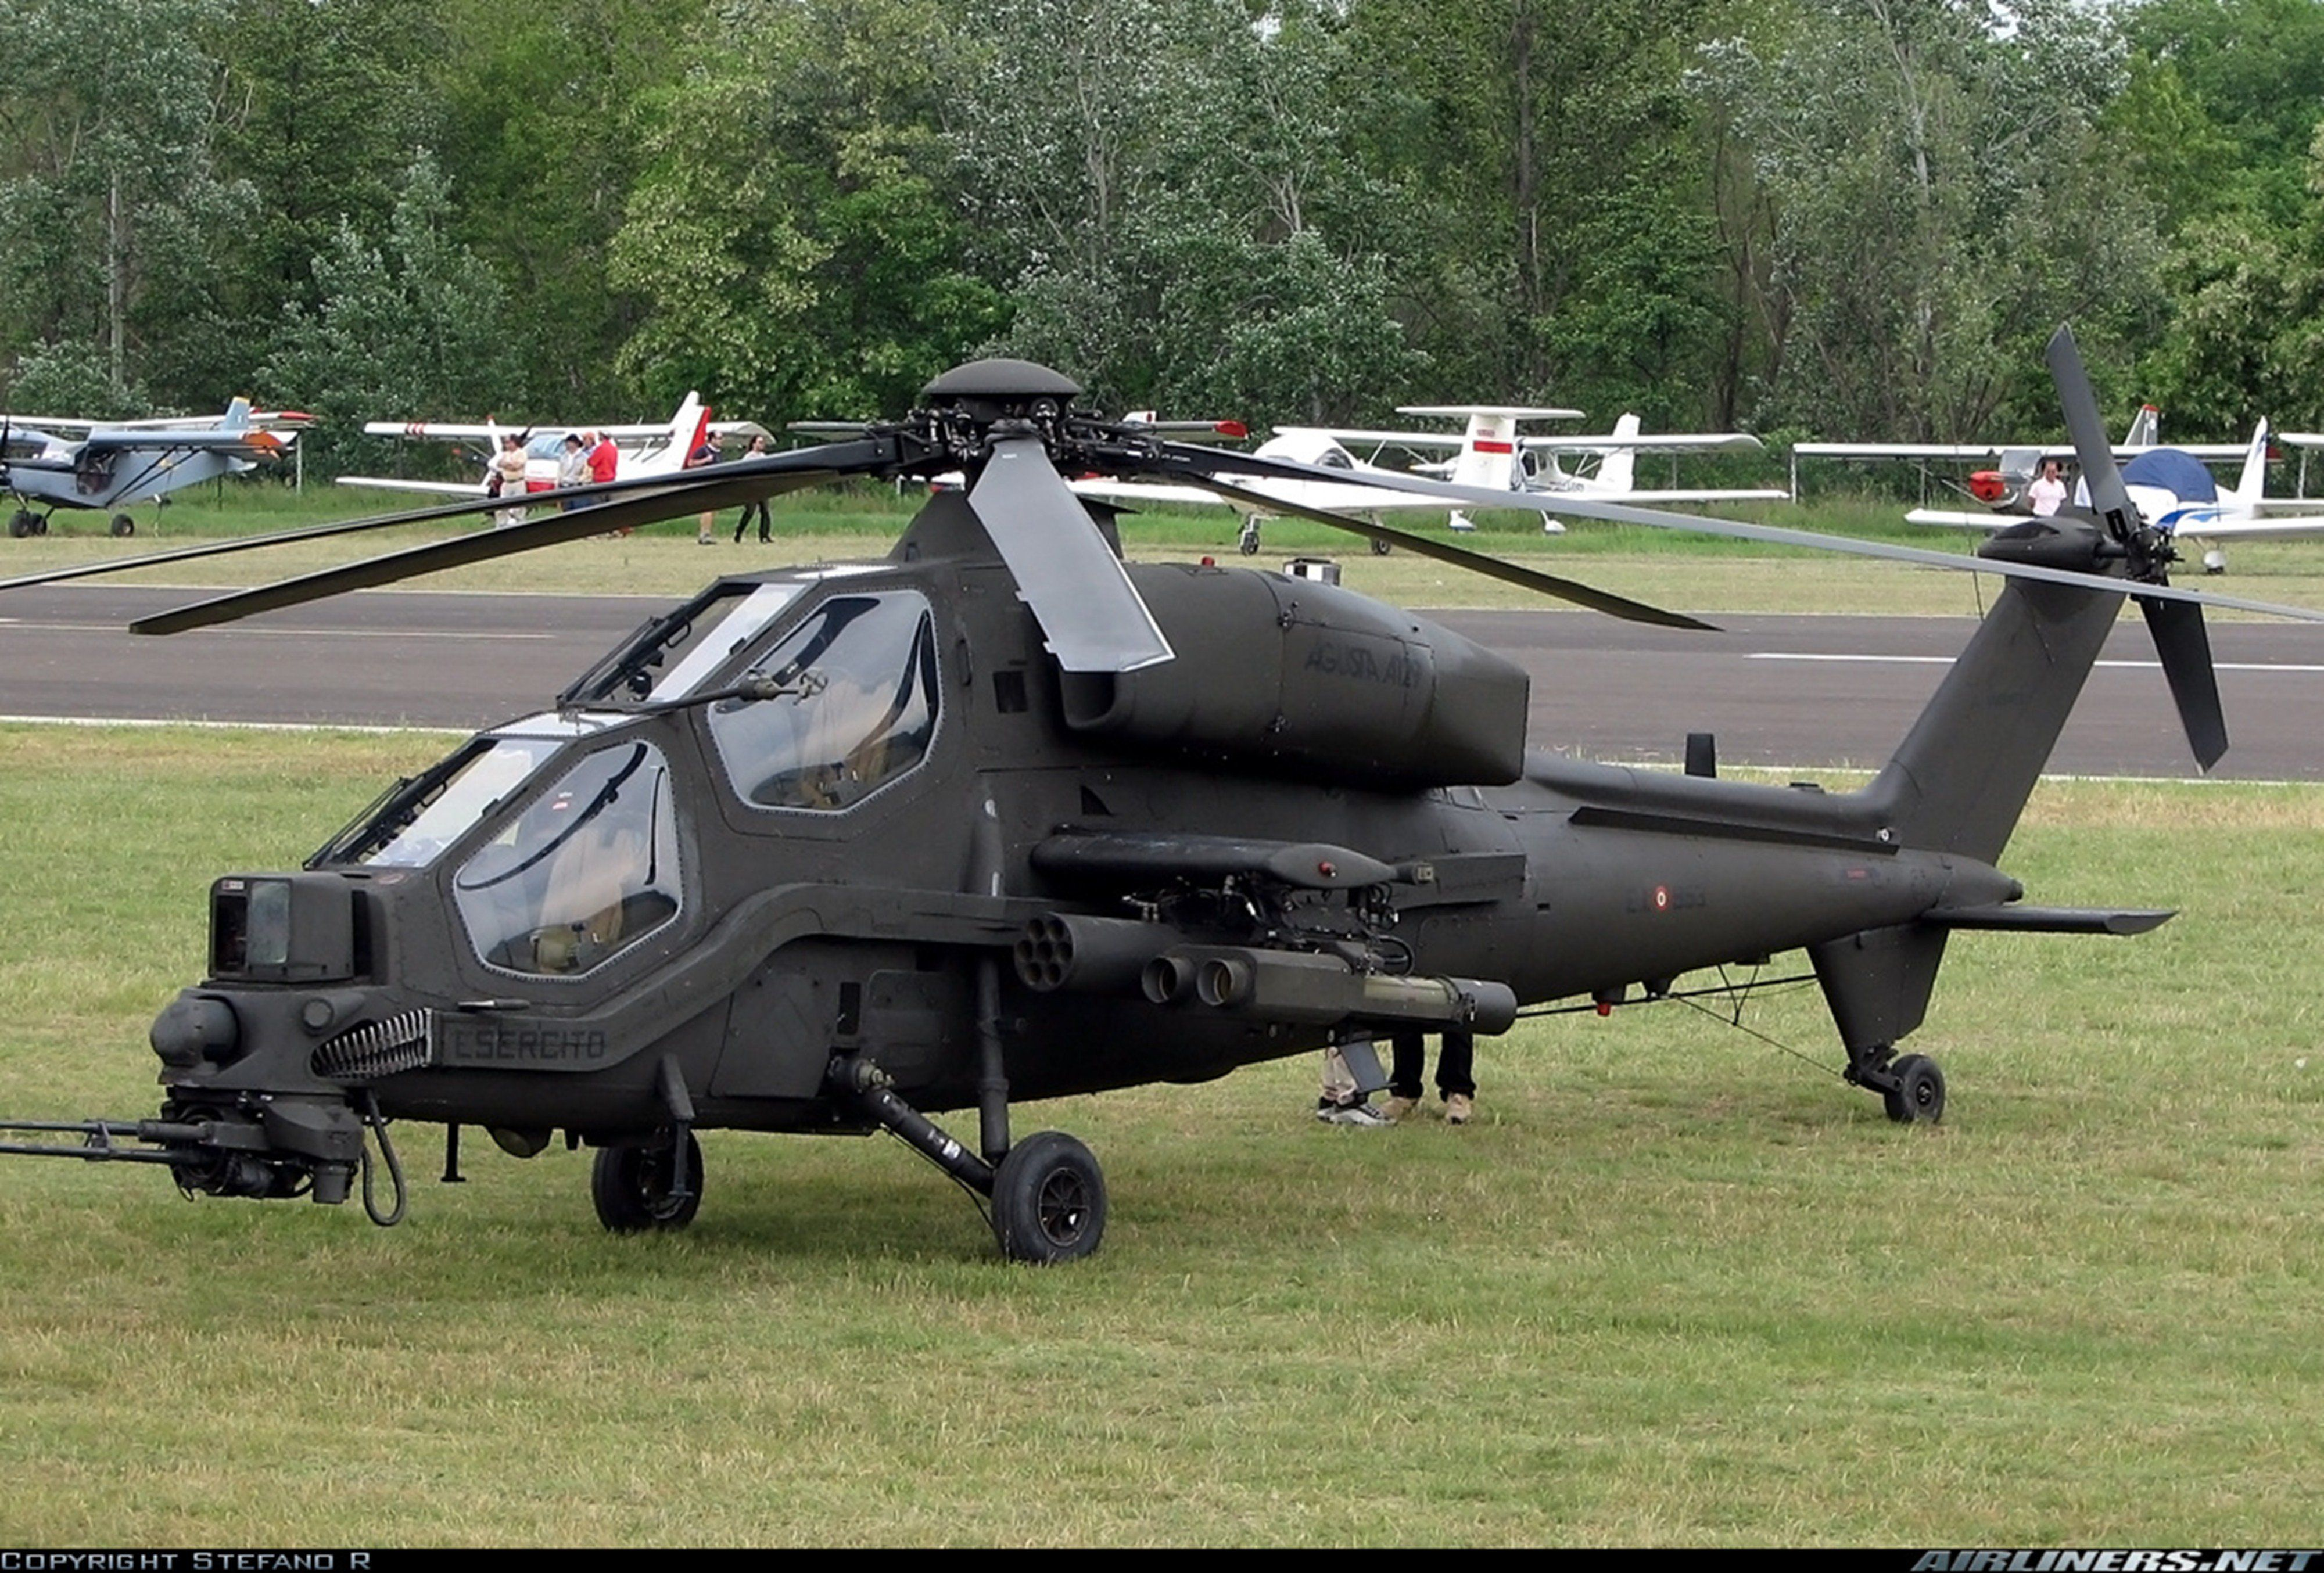 Elicottero T 129 : Helicopter aircraft military army attack agusta a129 mangusta italy